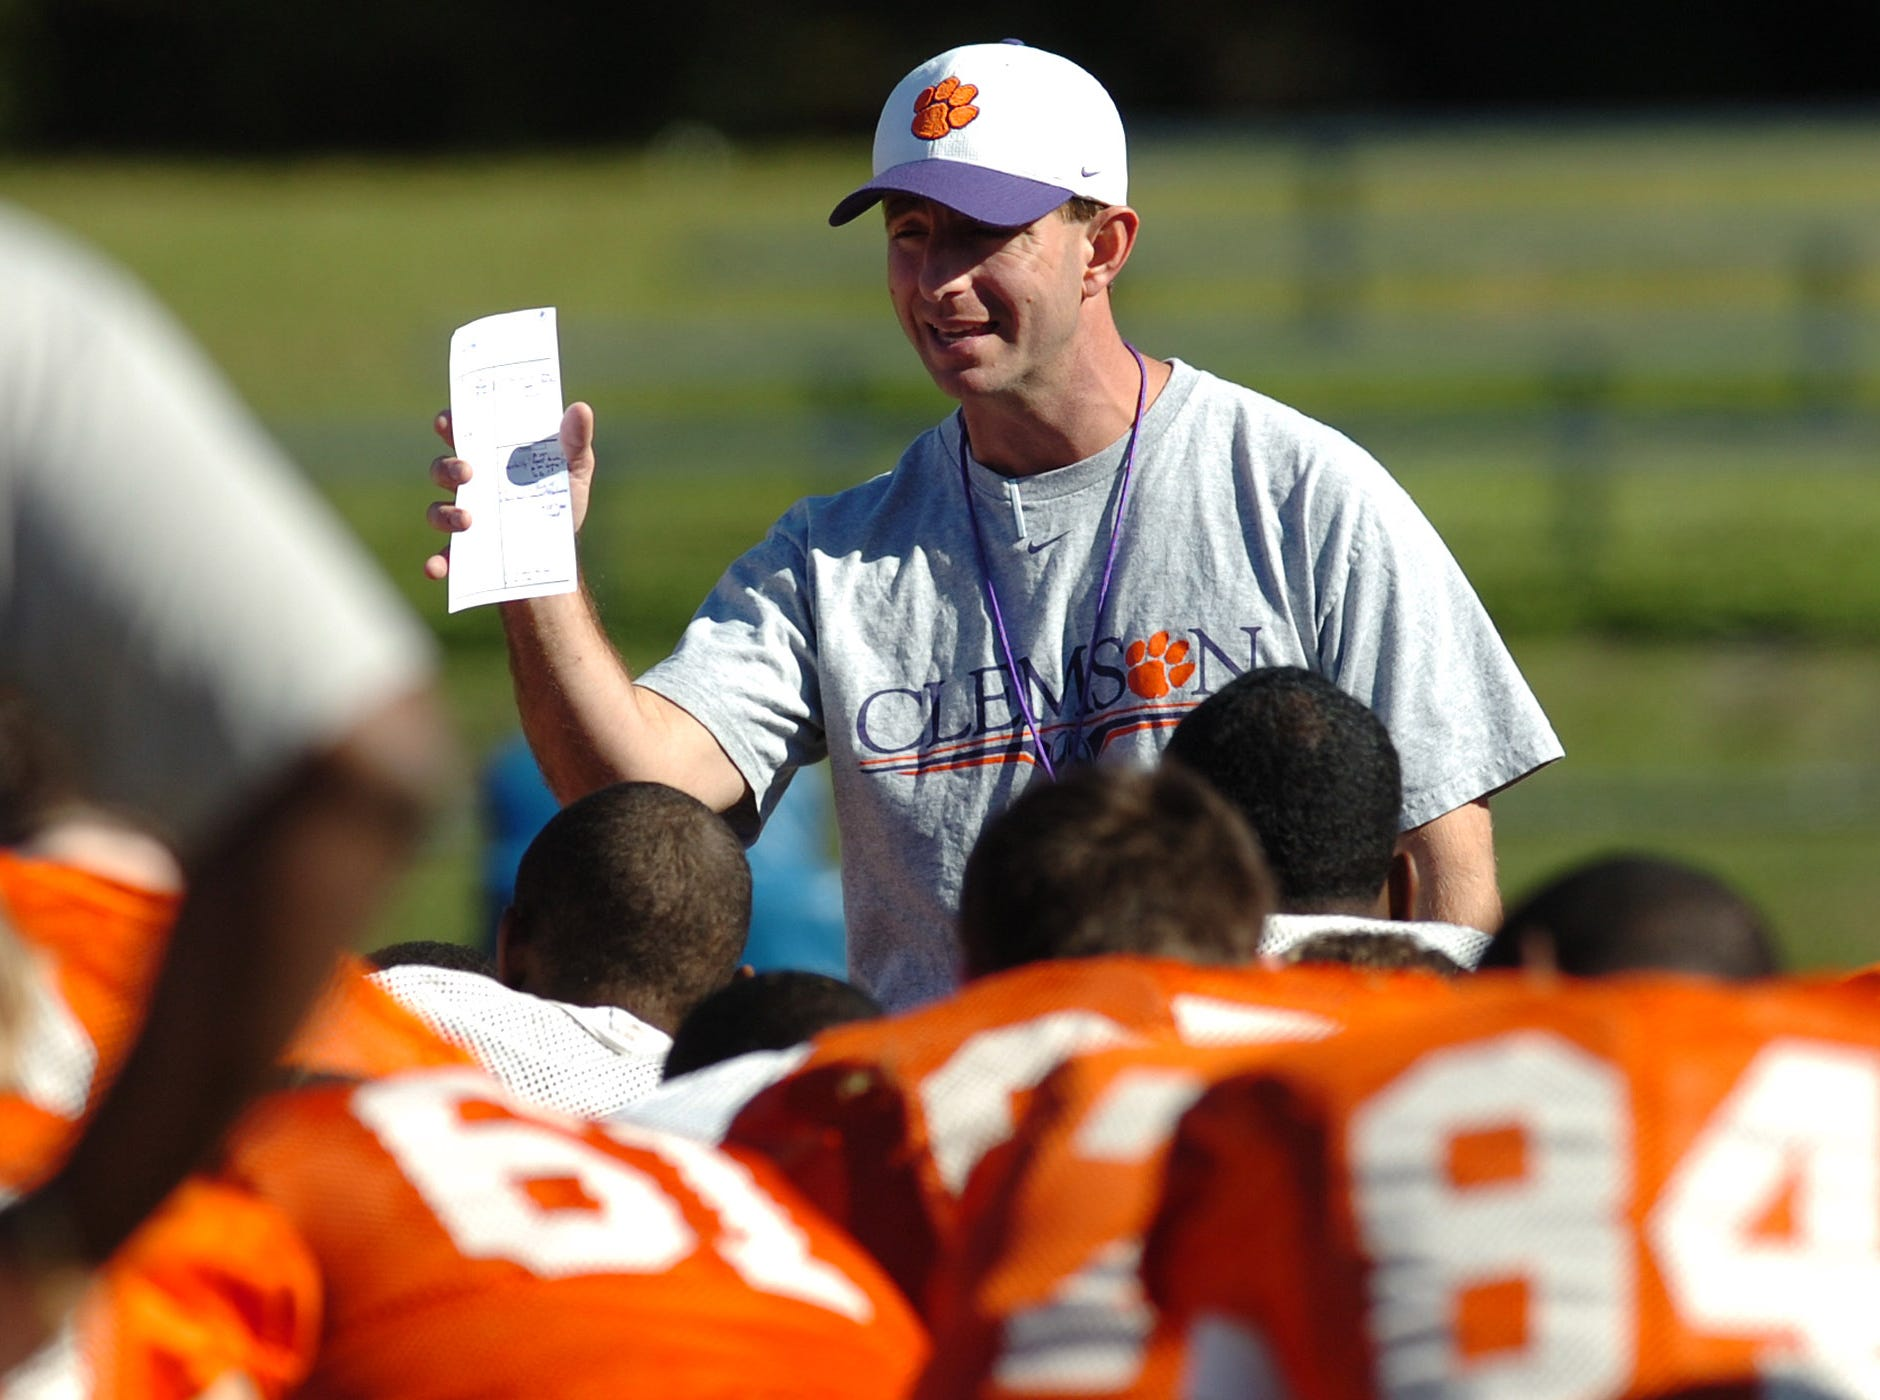 Clemson head coach Dabo Swinney talks with his team during practice Tuesday, December 30, 2008 at Jacksonville University in Jacksonville, Fl. The team is preparing for the Gator Bowl Thursday where they will play Nebraska.